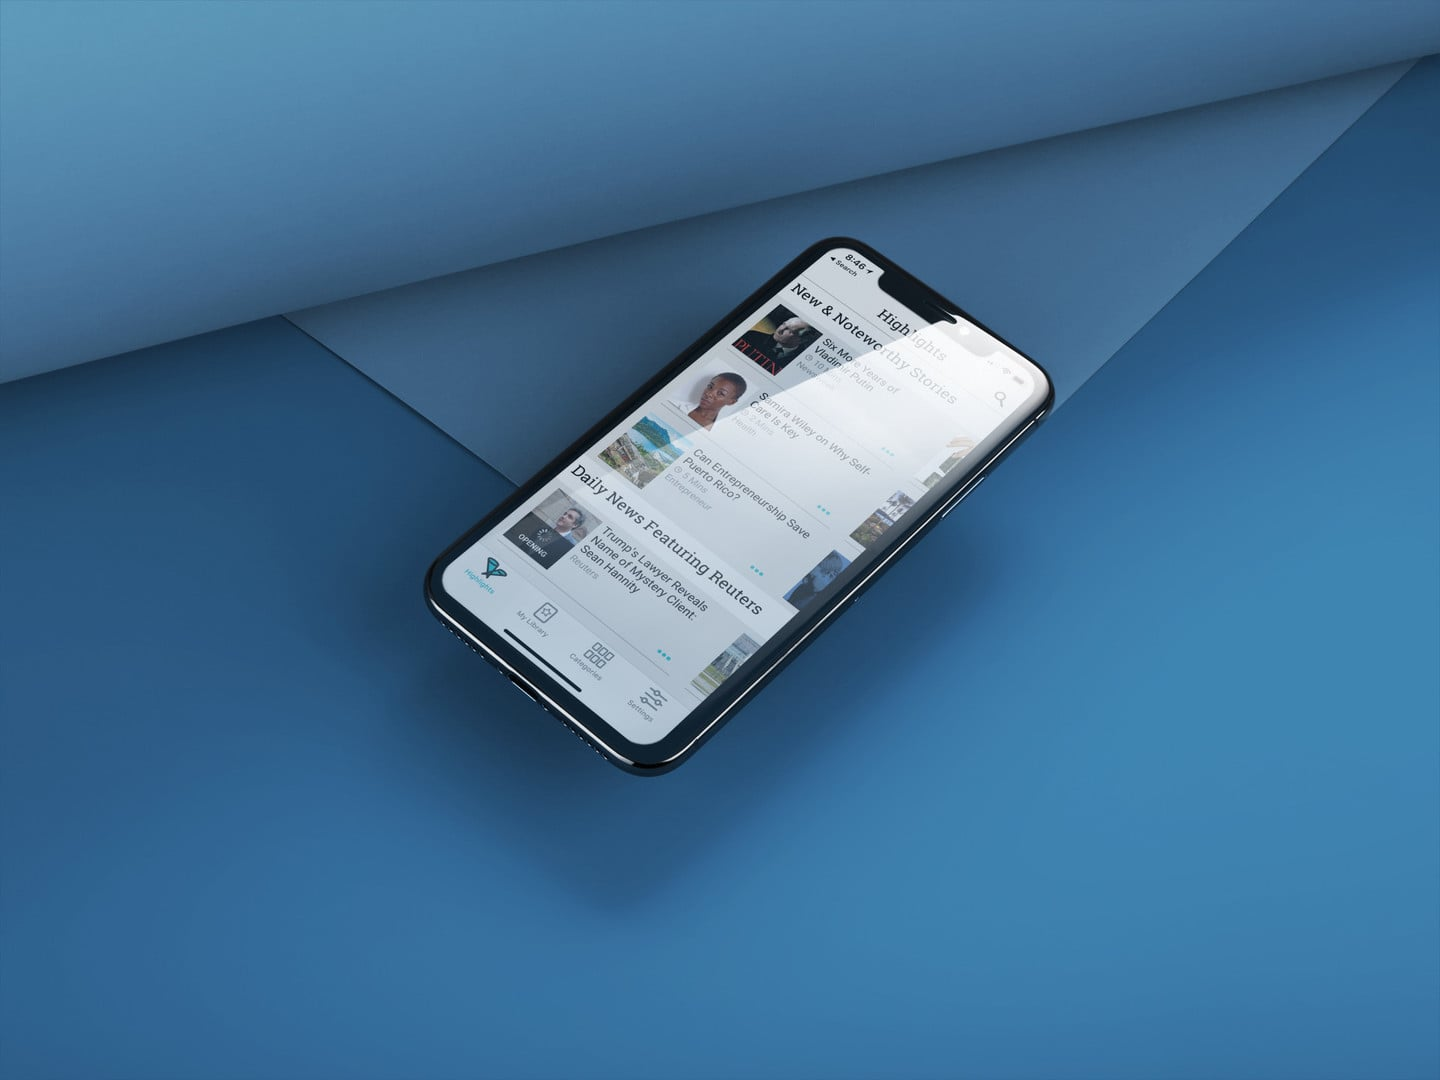 Apple Reportedly Planning To Launch News Subscription Service In 2019